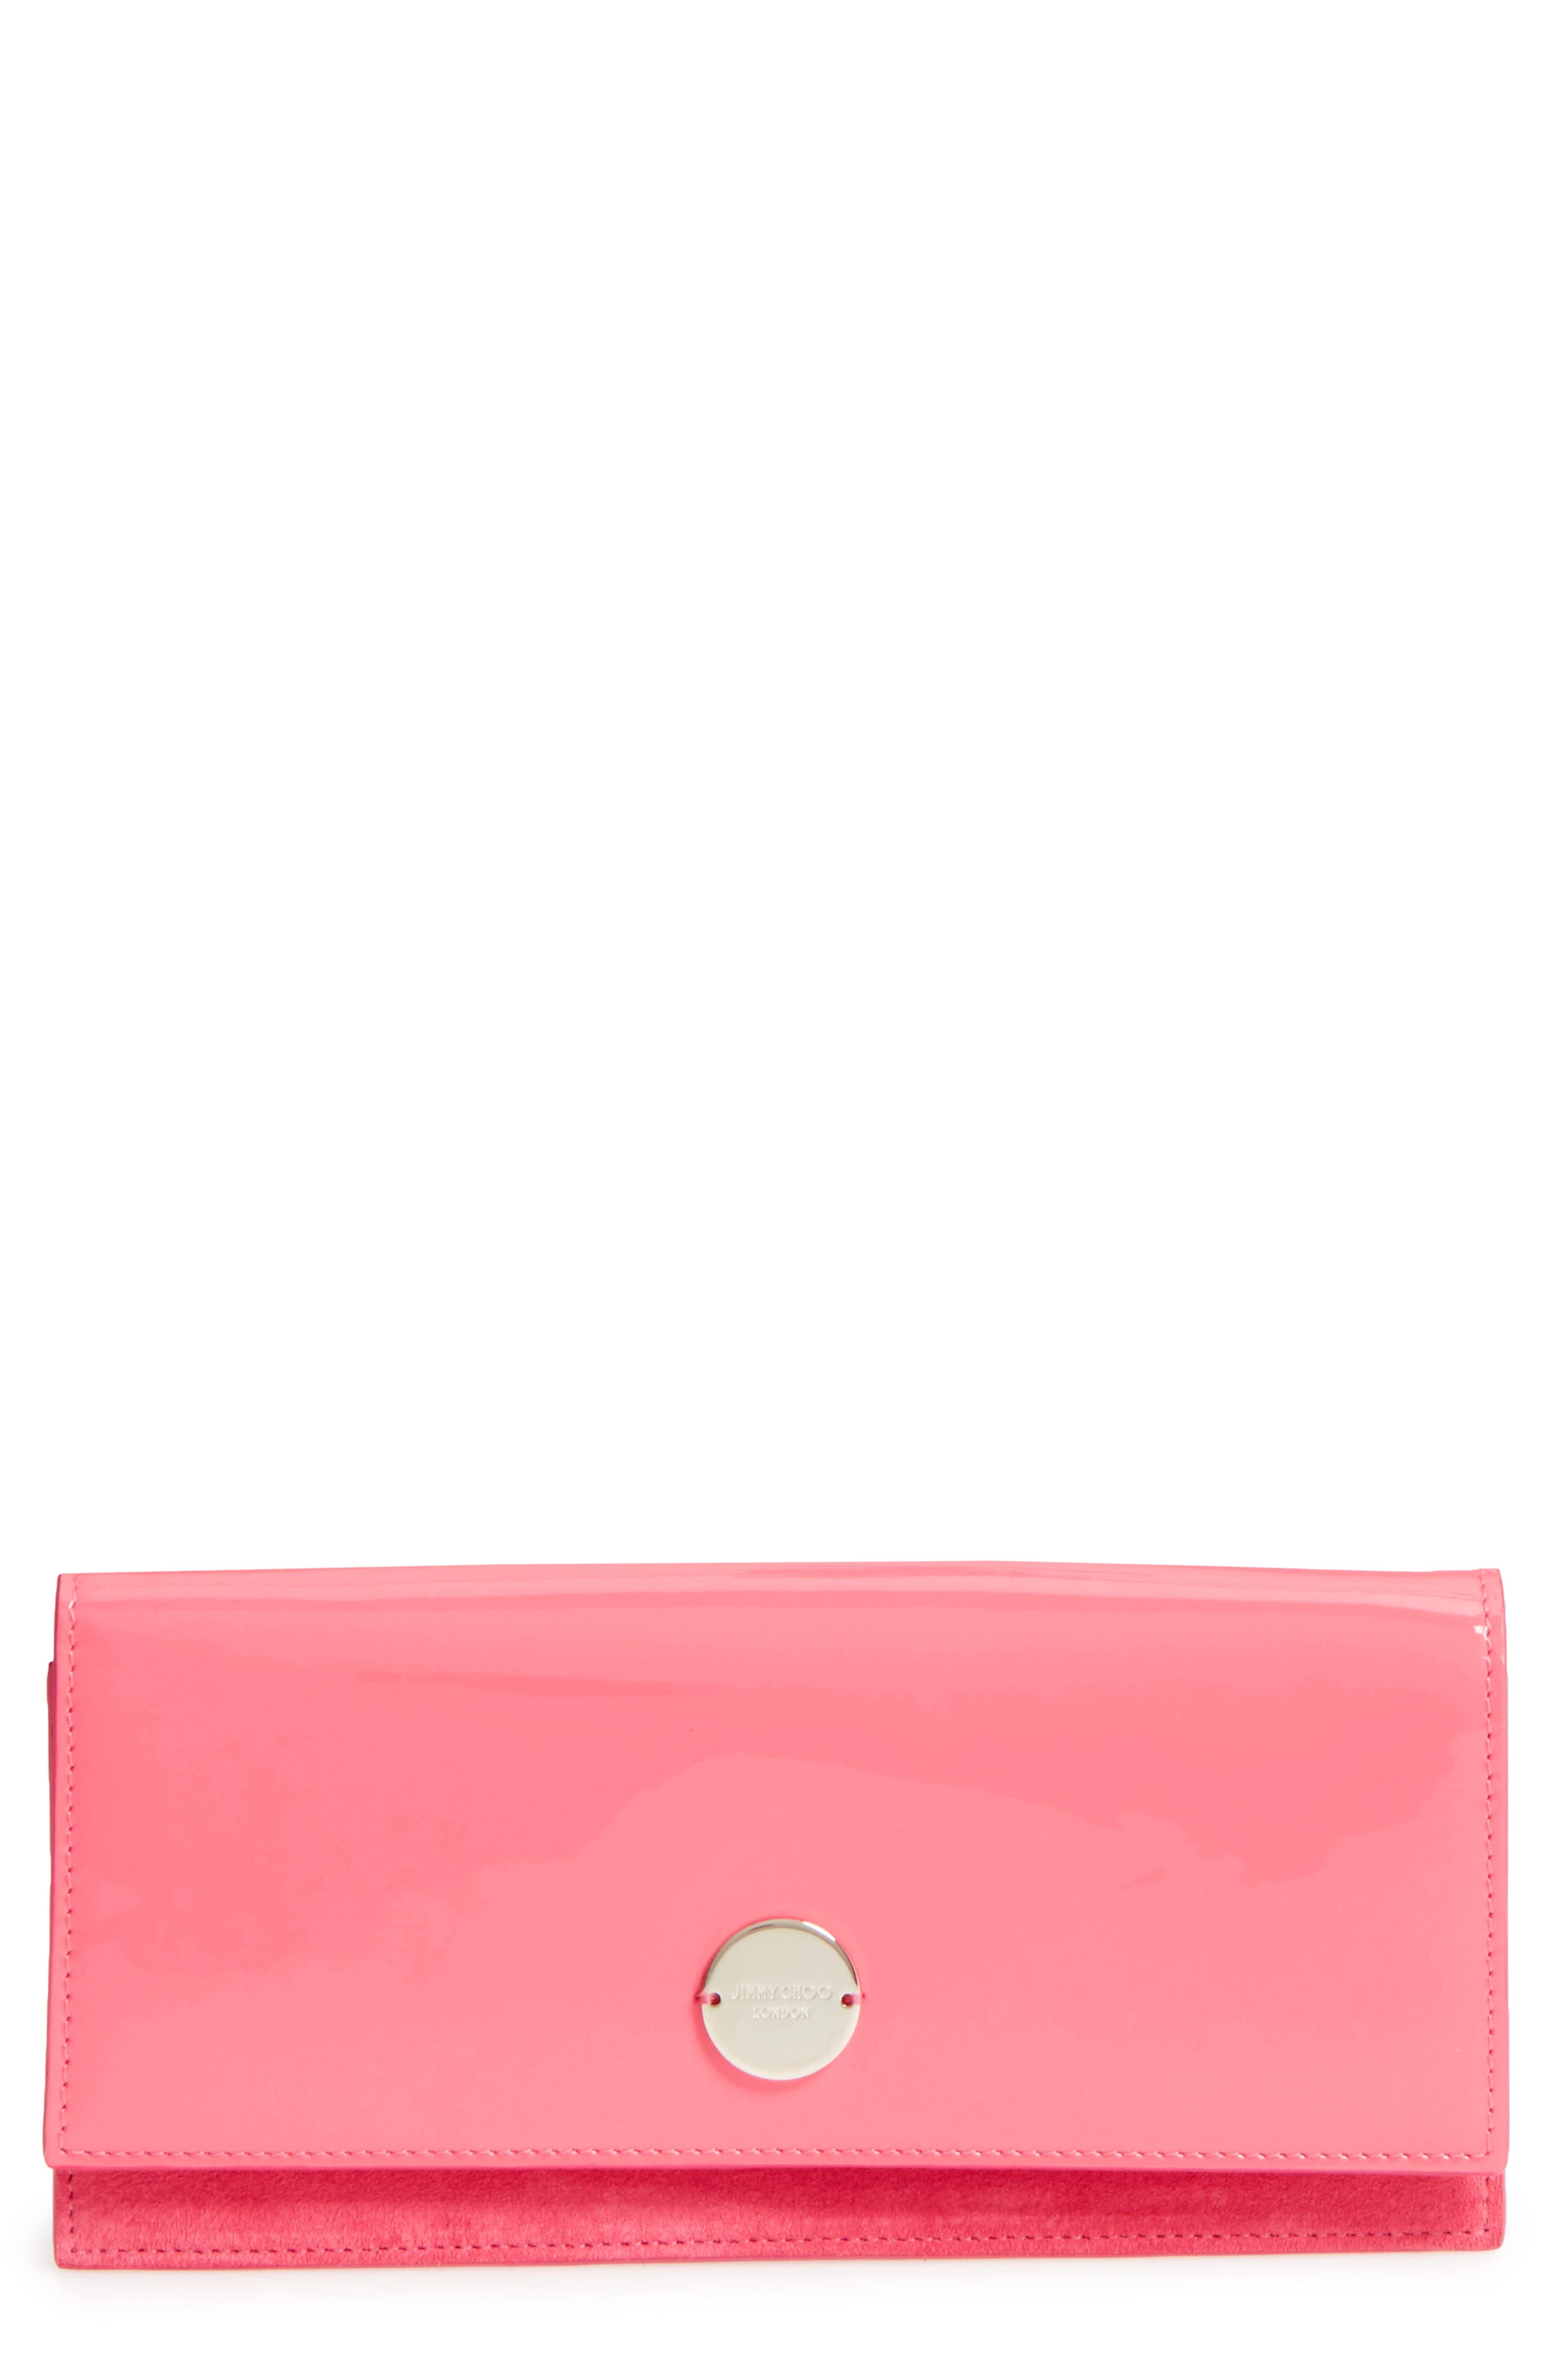 Alternate Image 1 Selected - Jimmy Choo Fie Suede & Patent Leather Clutch